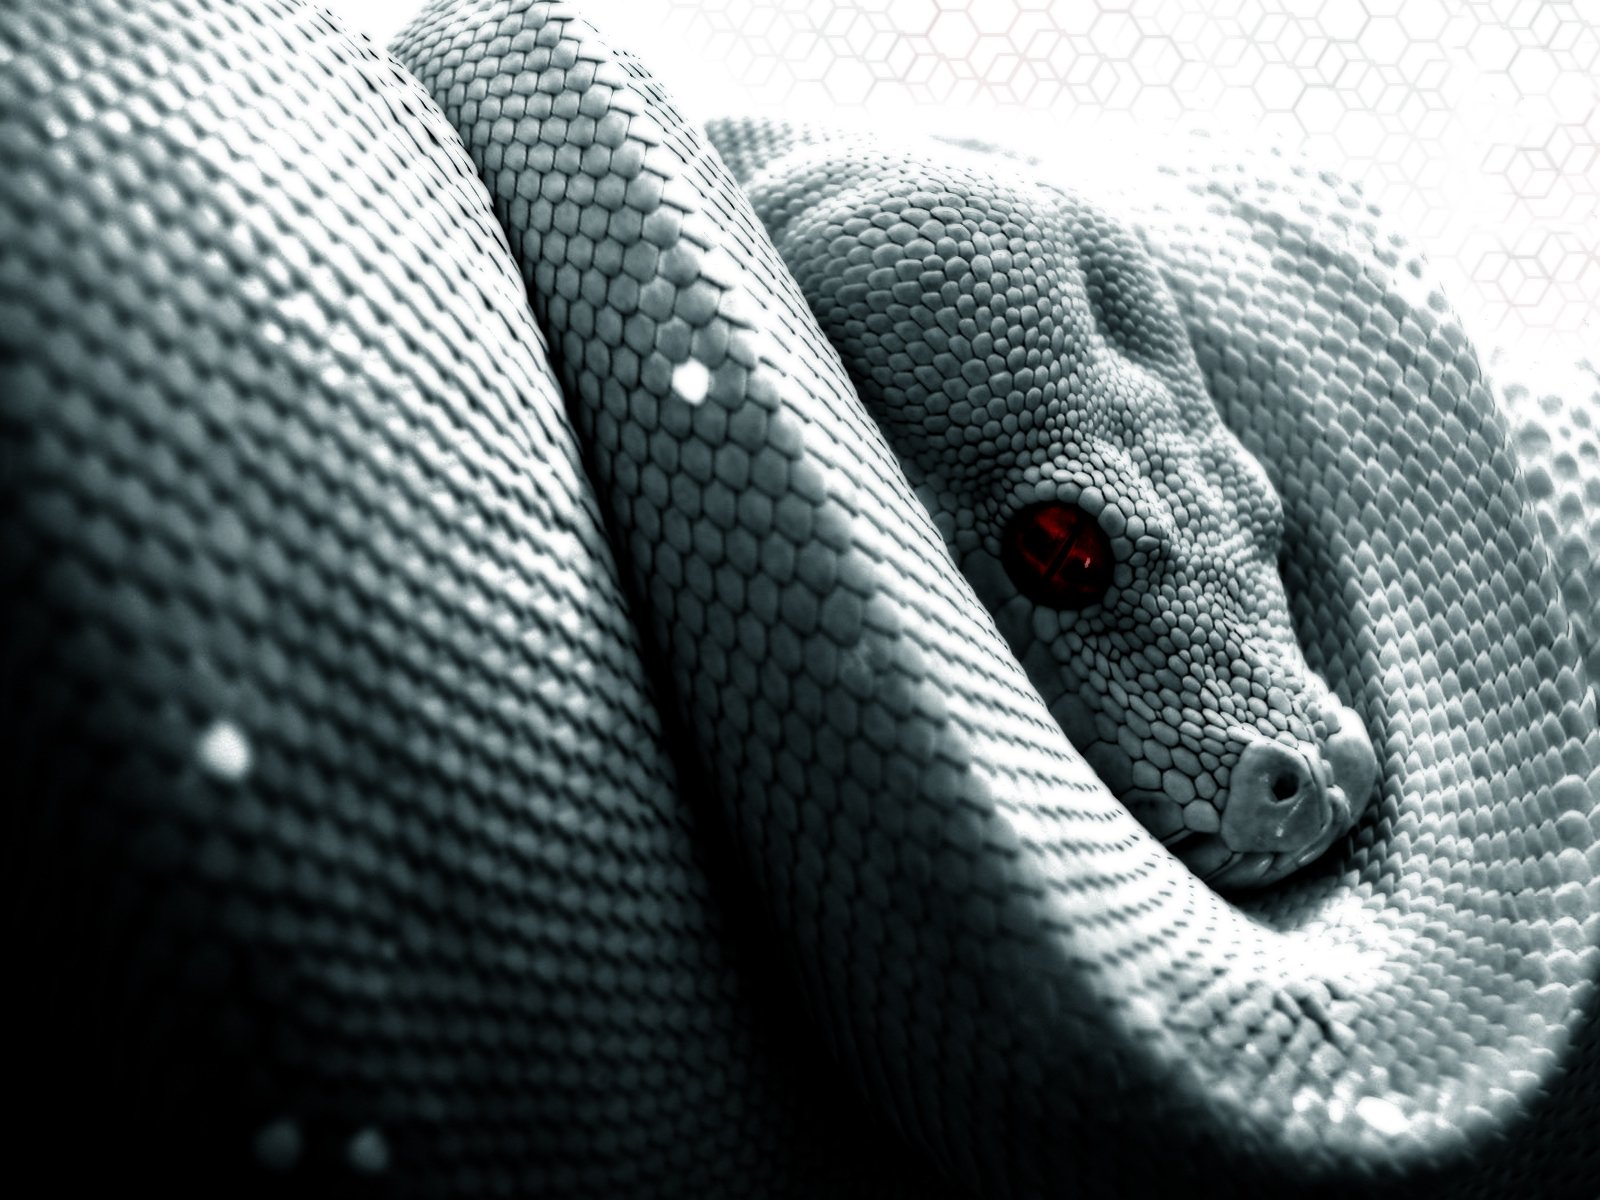 Animal - Python  Snake Reptile Animal Wallpaper